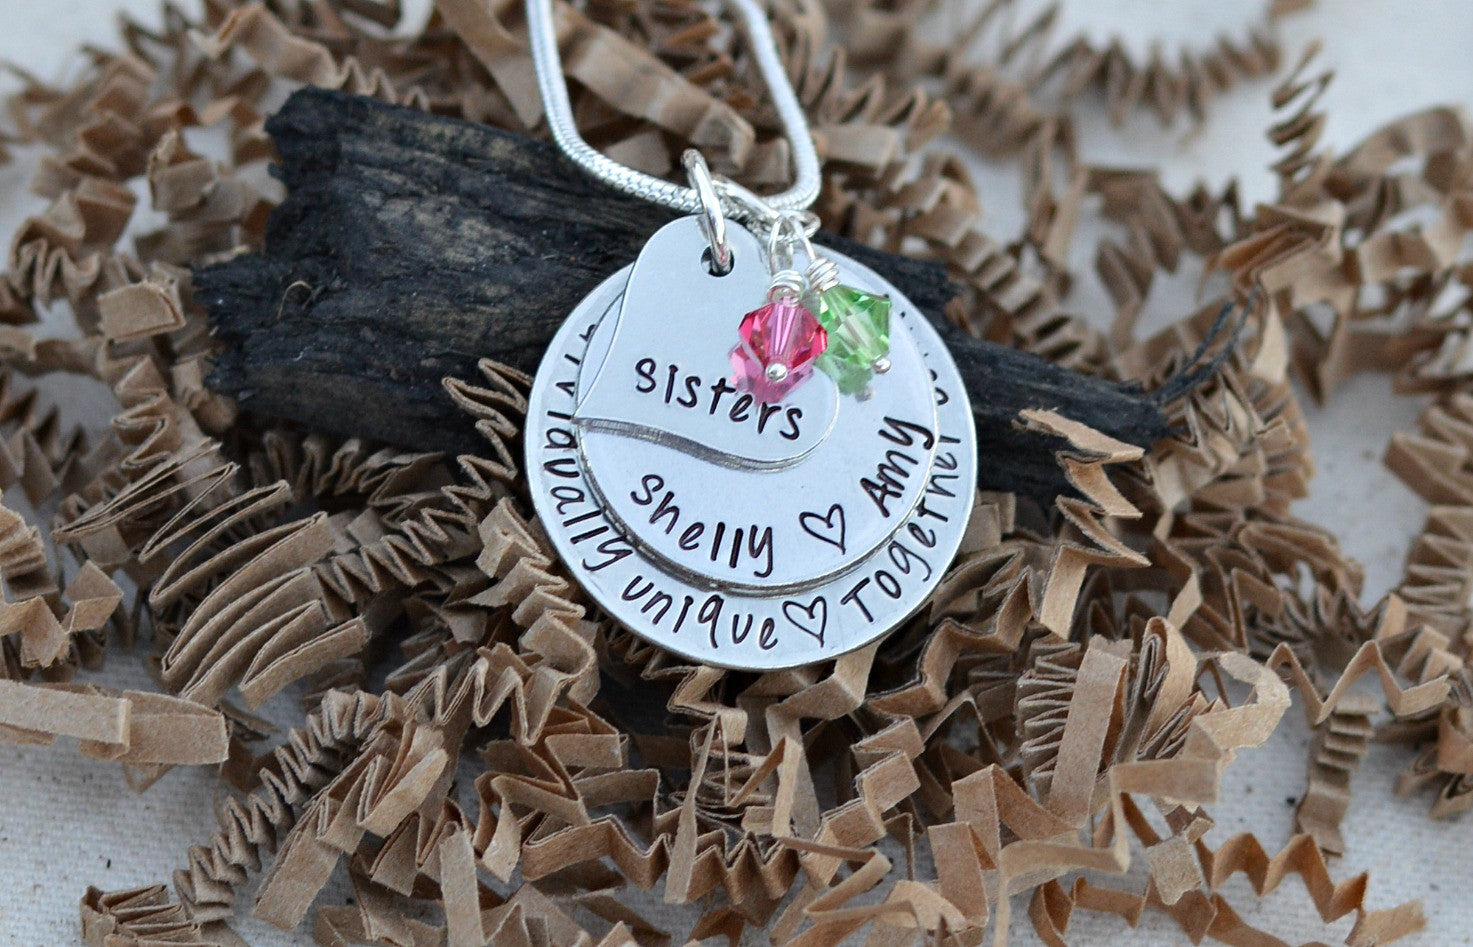 Unique Sister Gift Necklace Birthday Heel Lilies Jpg 1473x947 Cool Gifts For